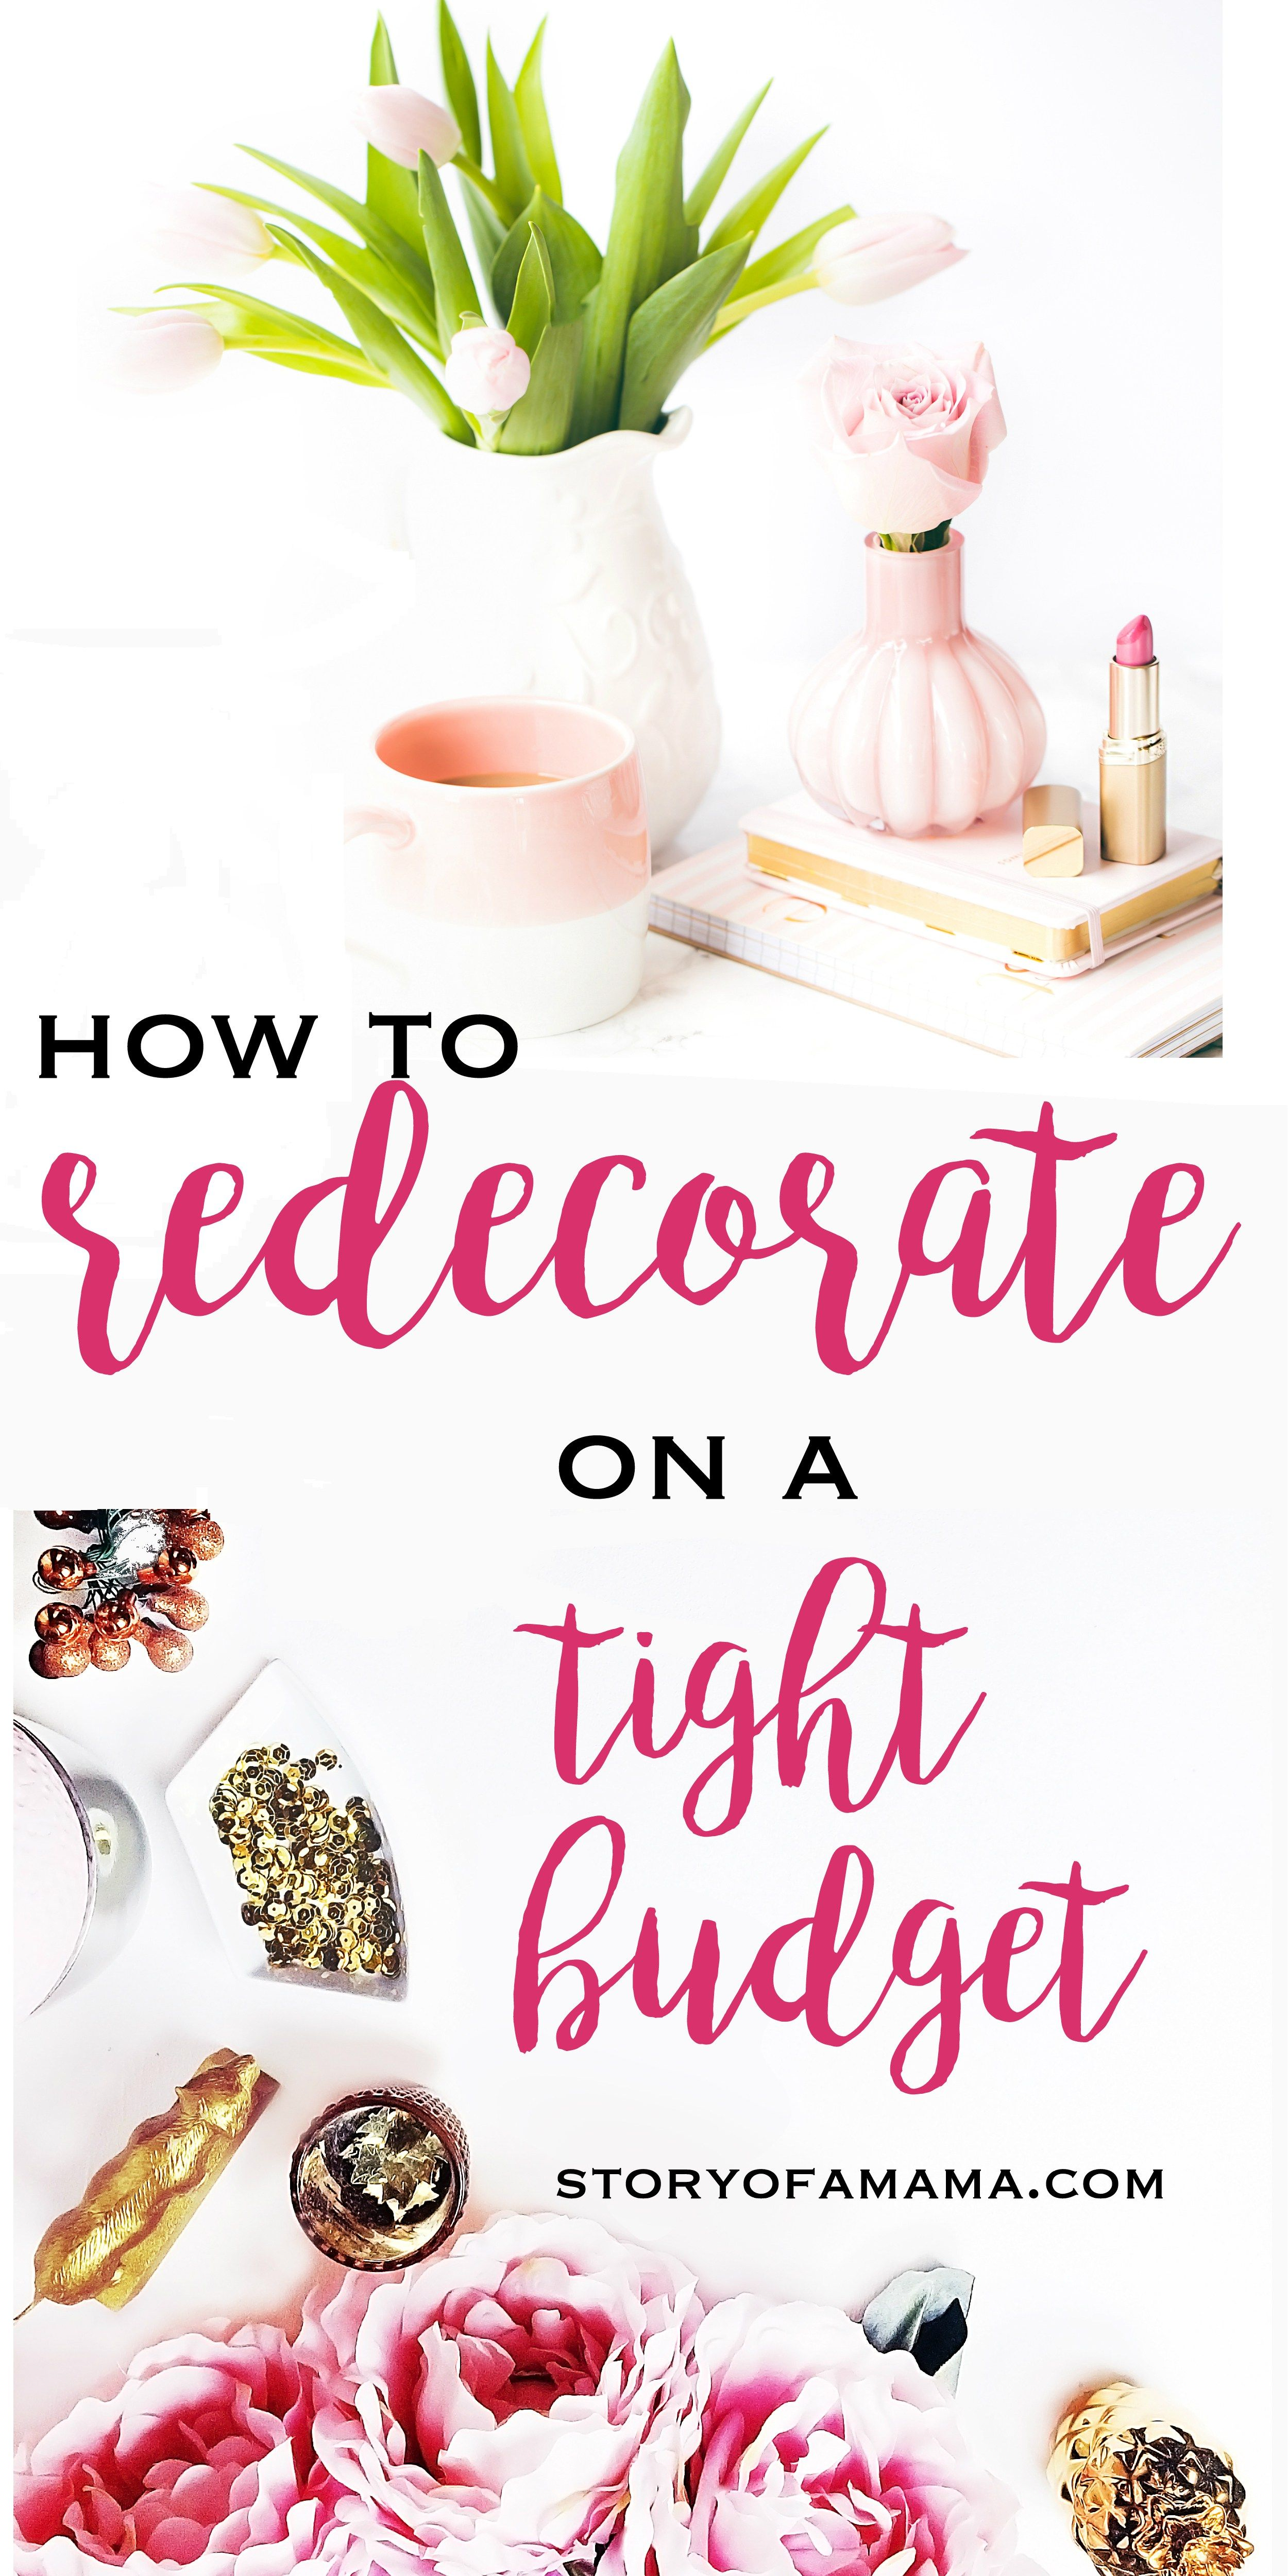 How to Redecorate Your Home on a Tight Budget images